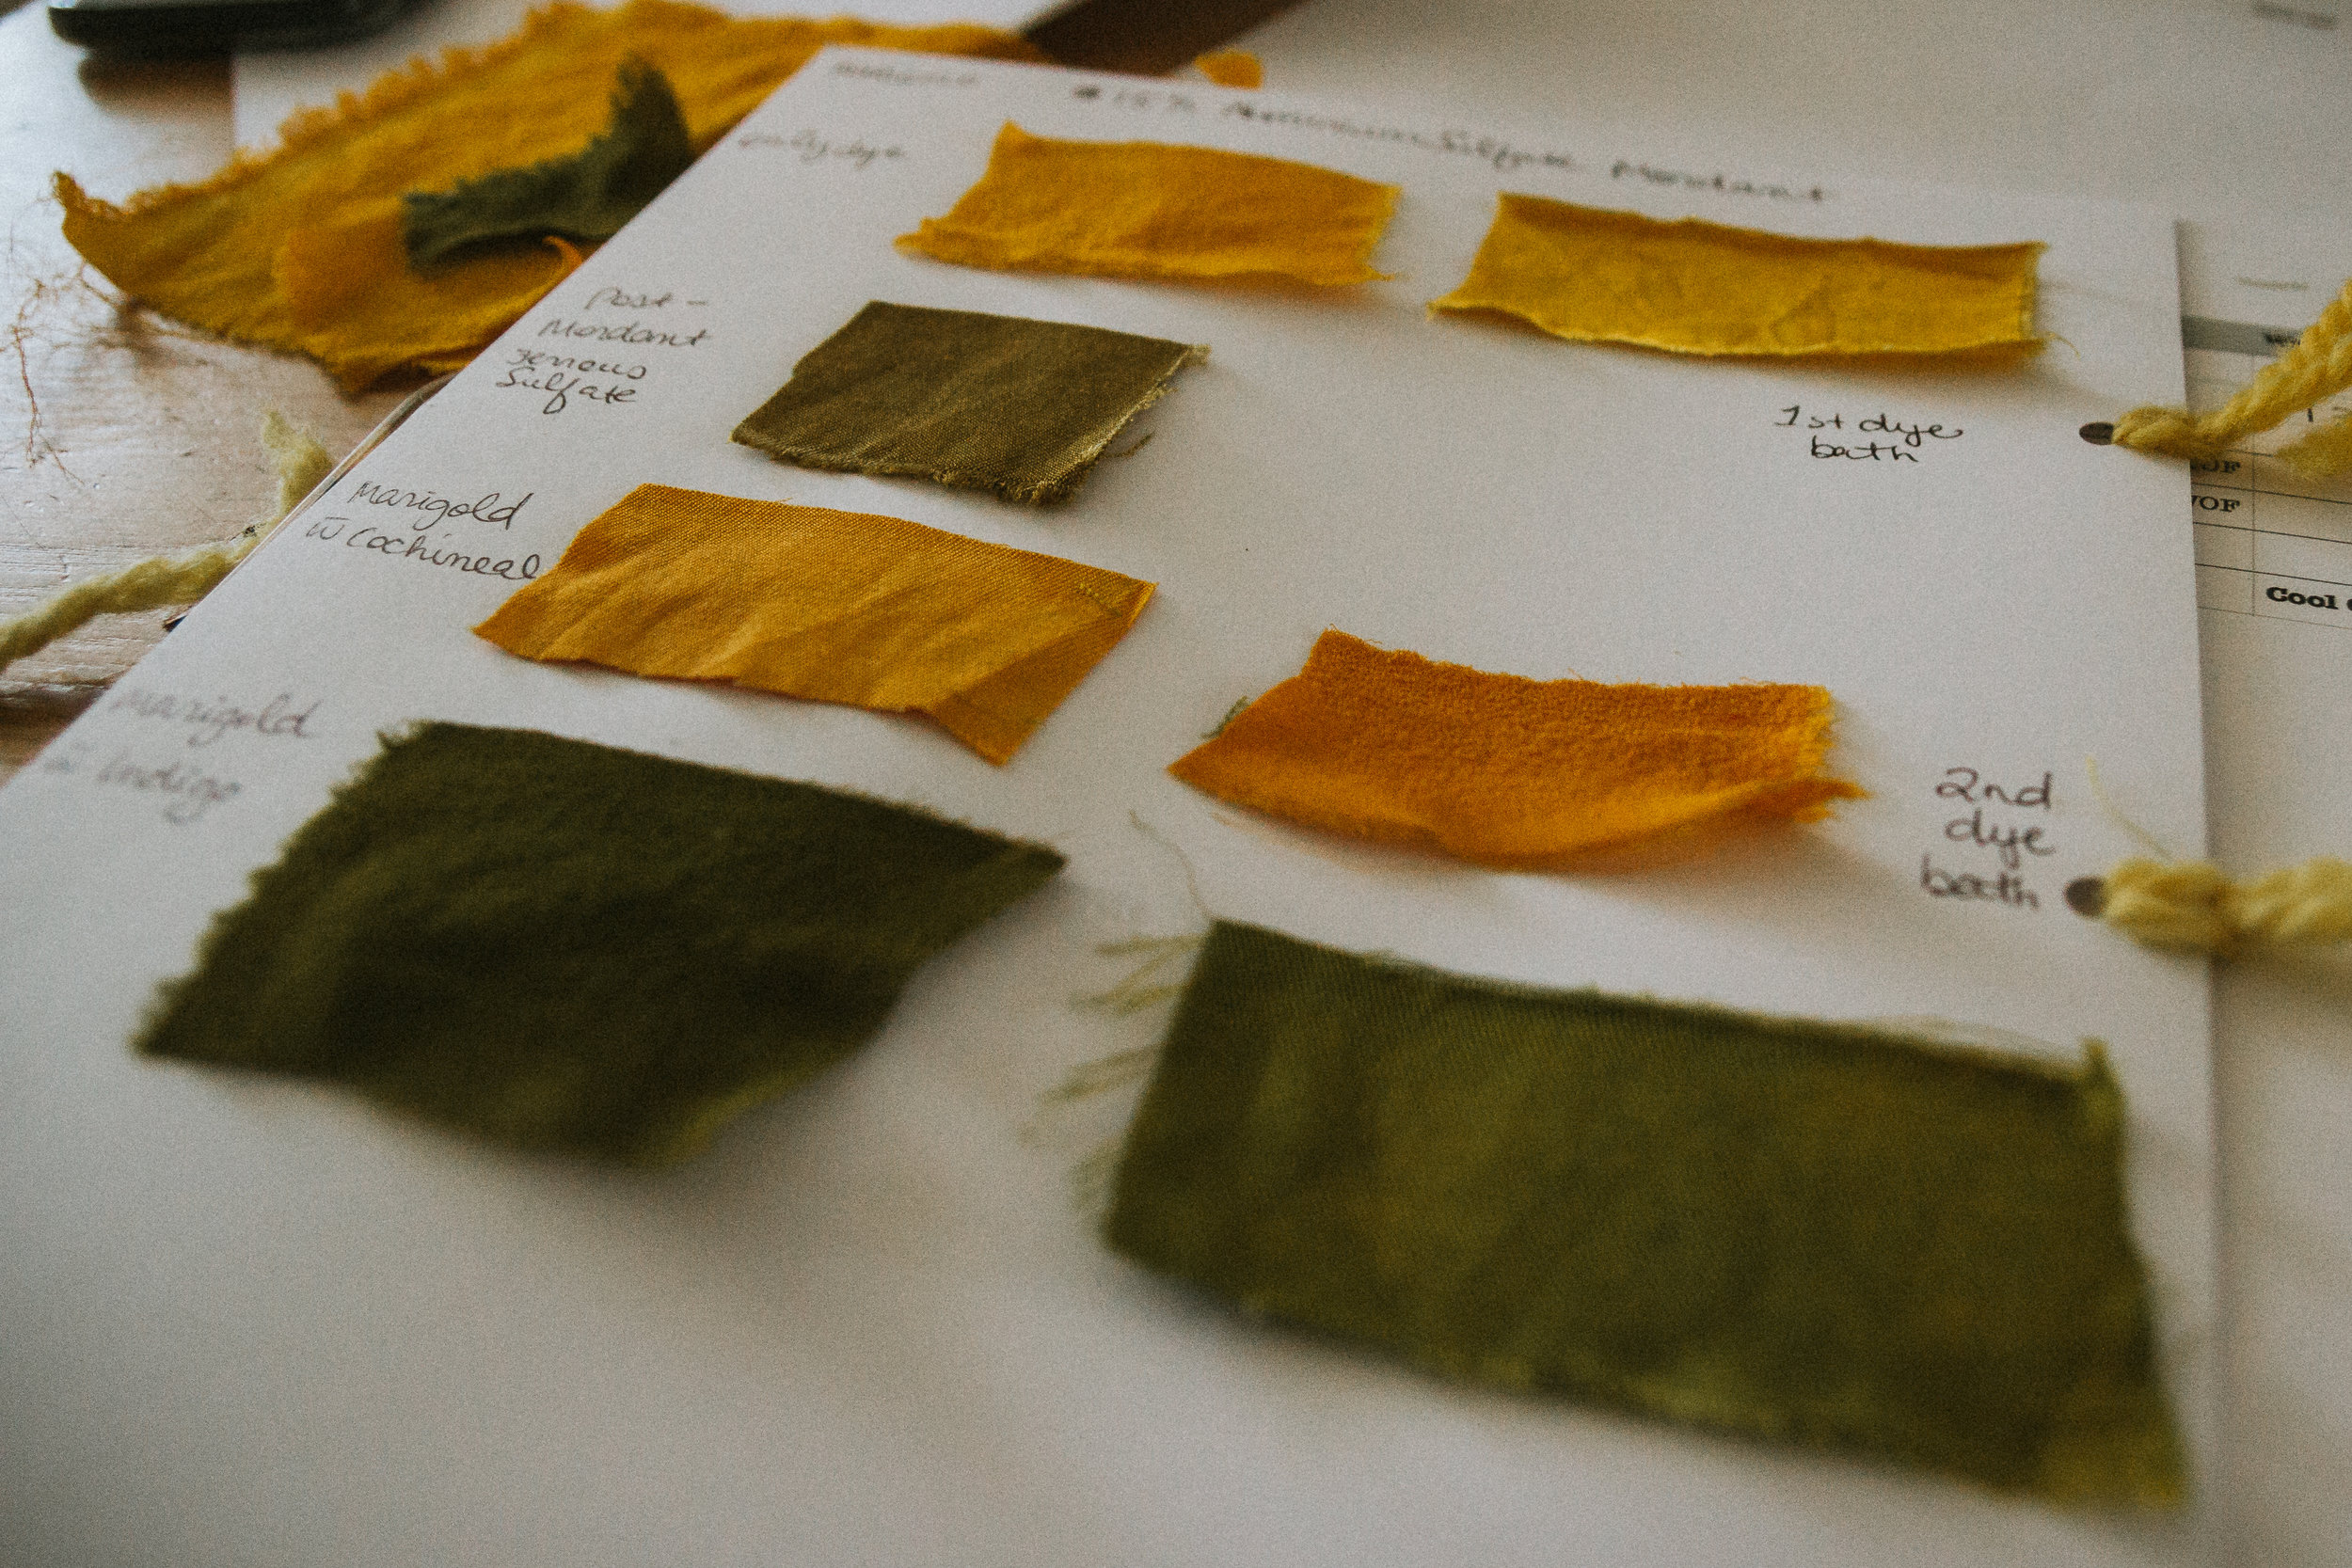 We cut up our dyed fabrics into swatches to document what we had learned that day, and to continue our experiments at home.